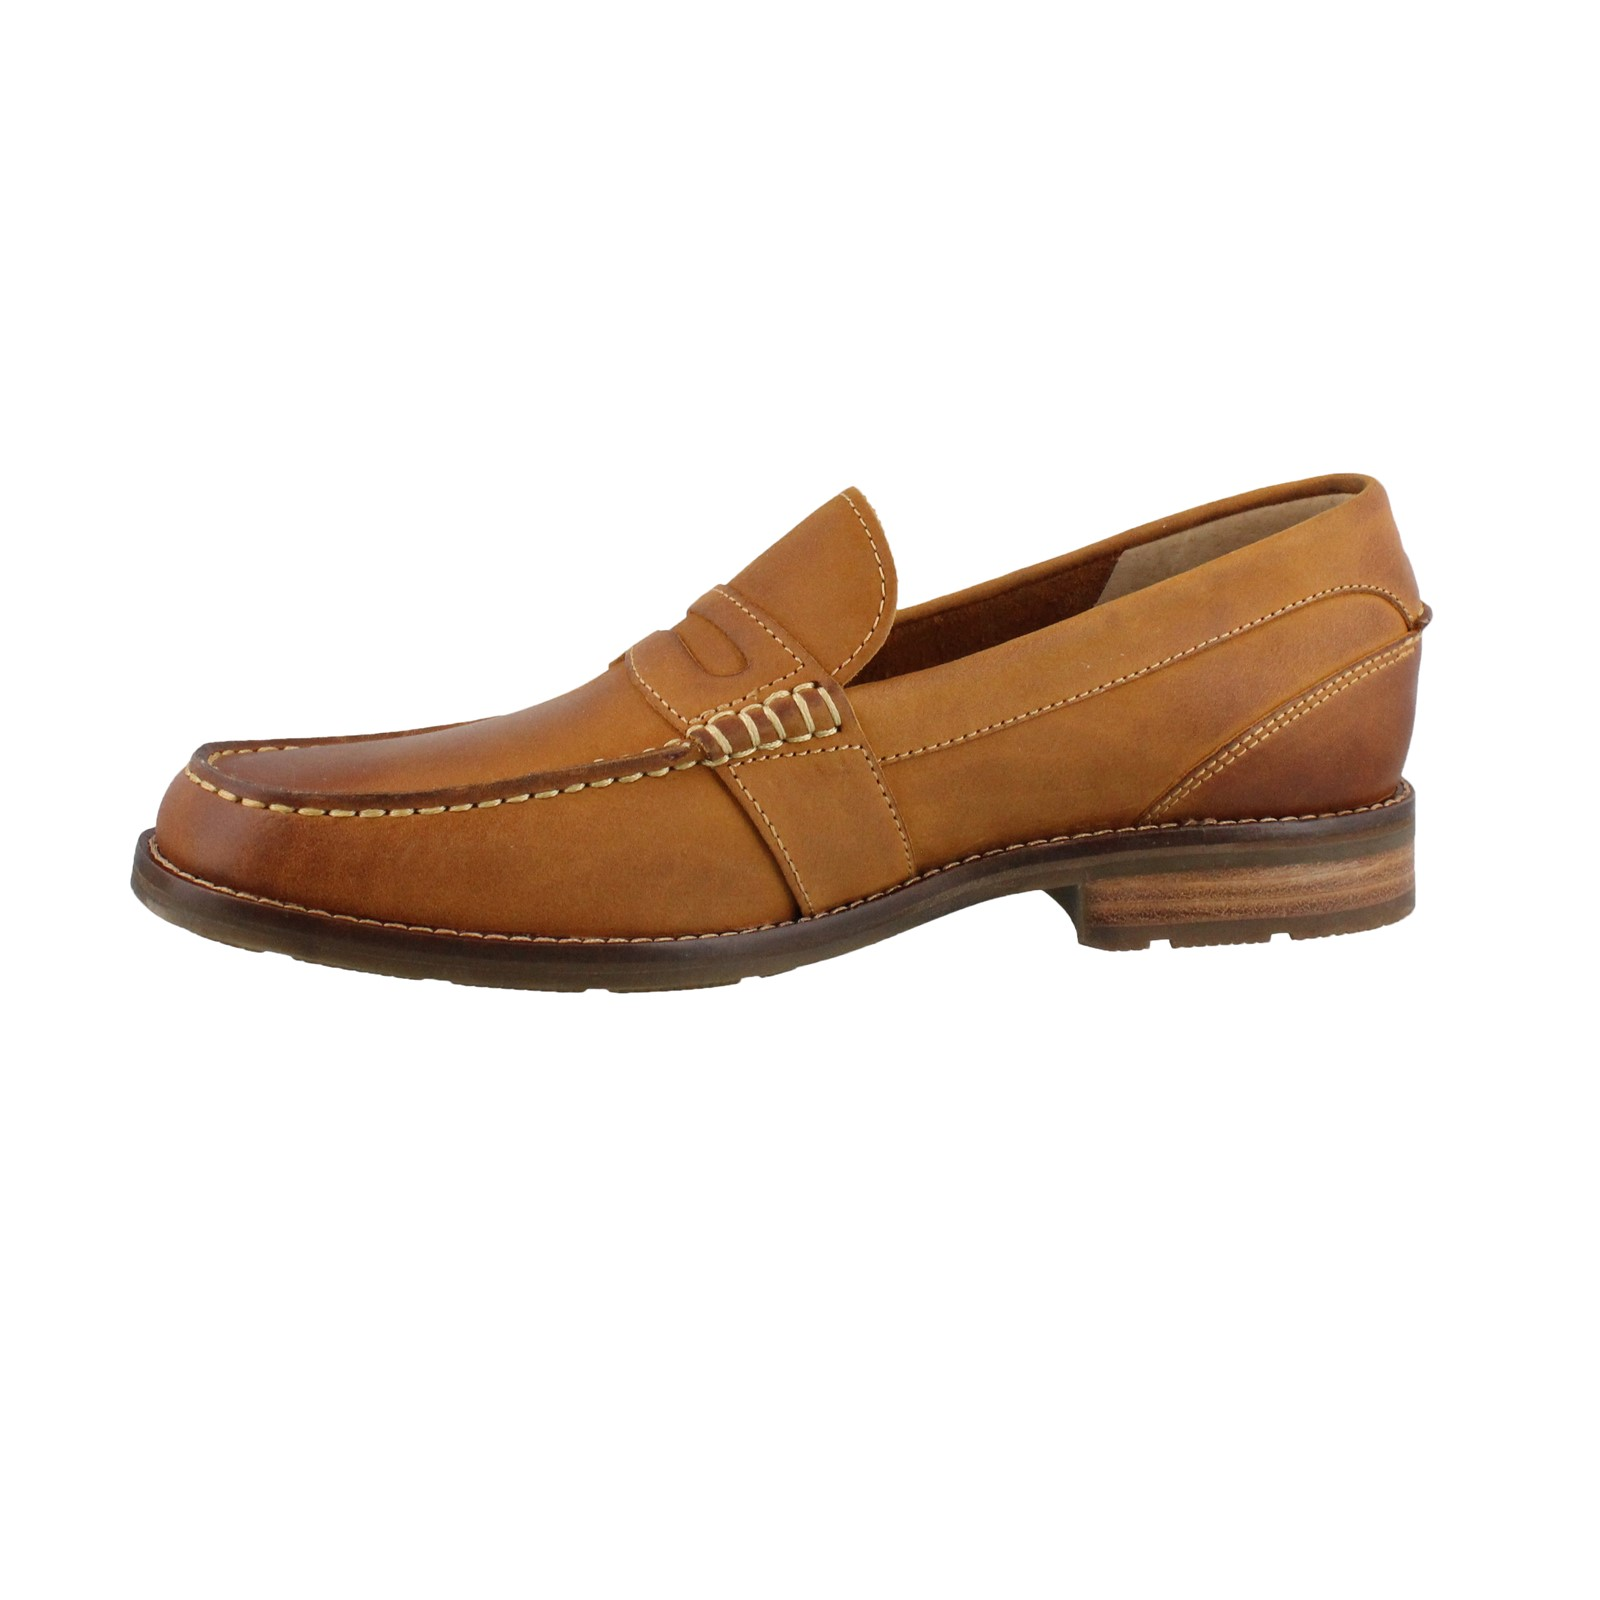 0f70a41f5636 Next. add to favorites. Men s Sperry